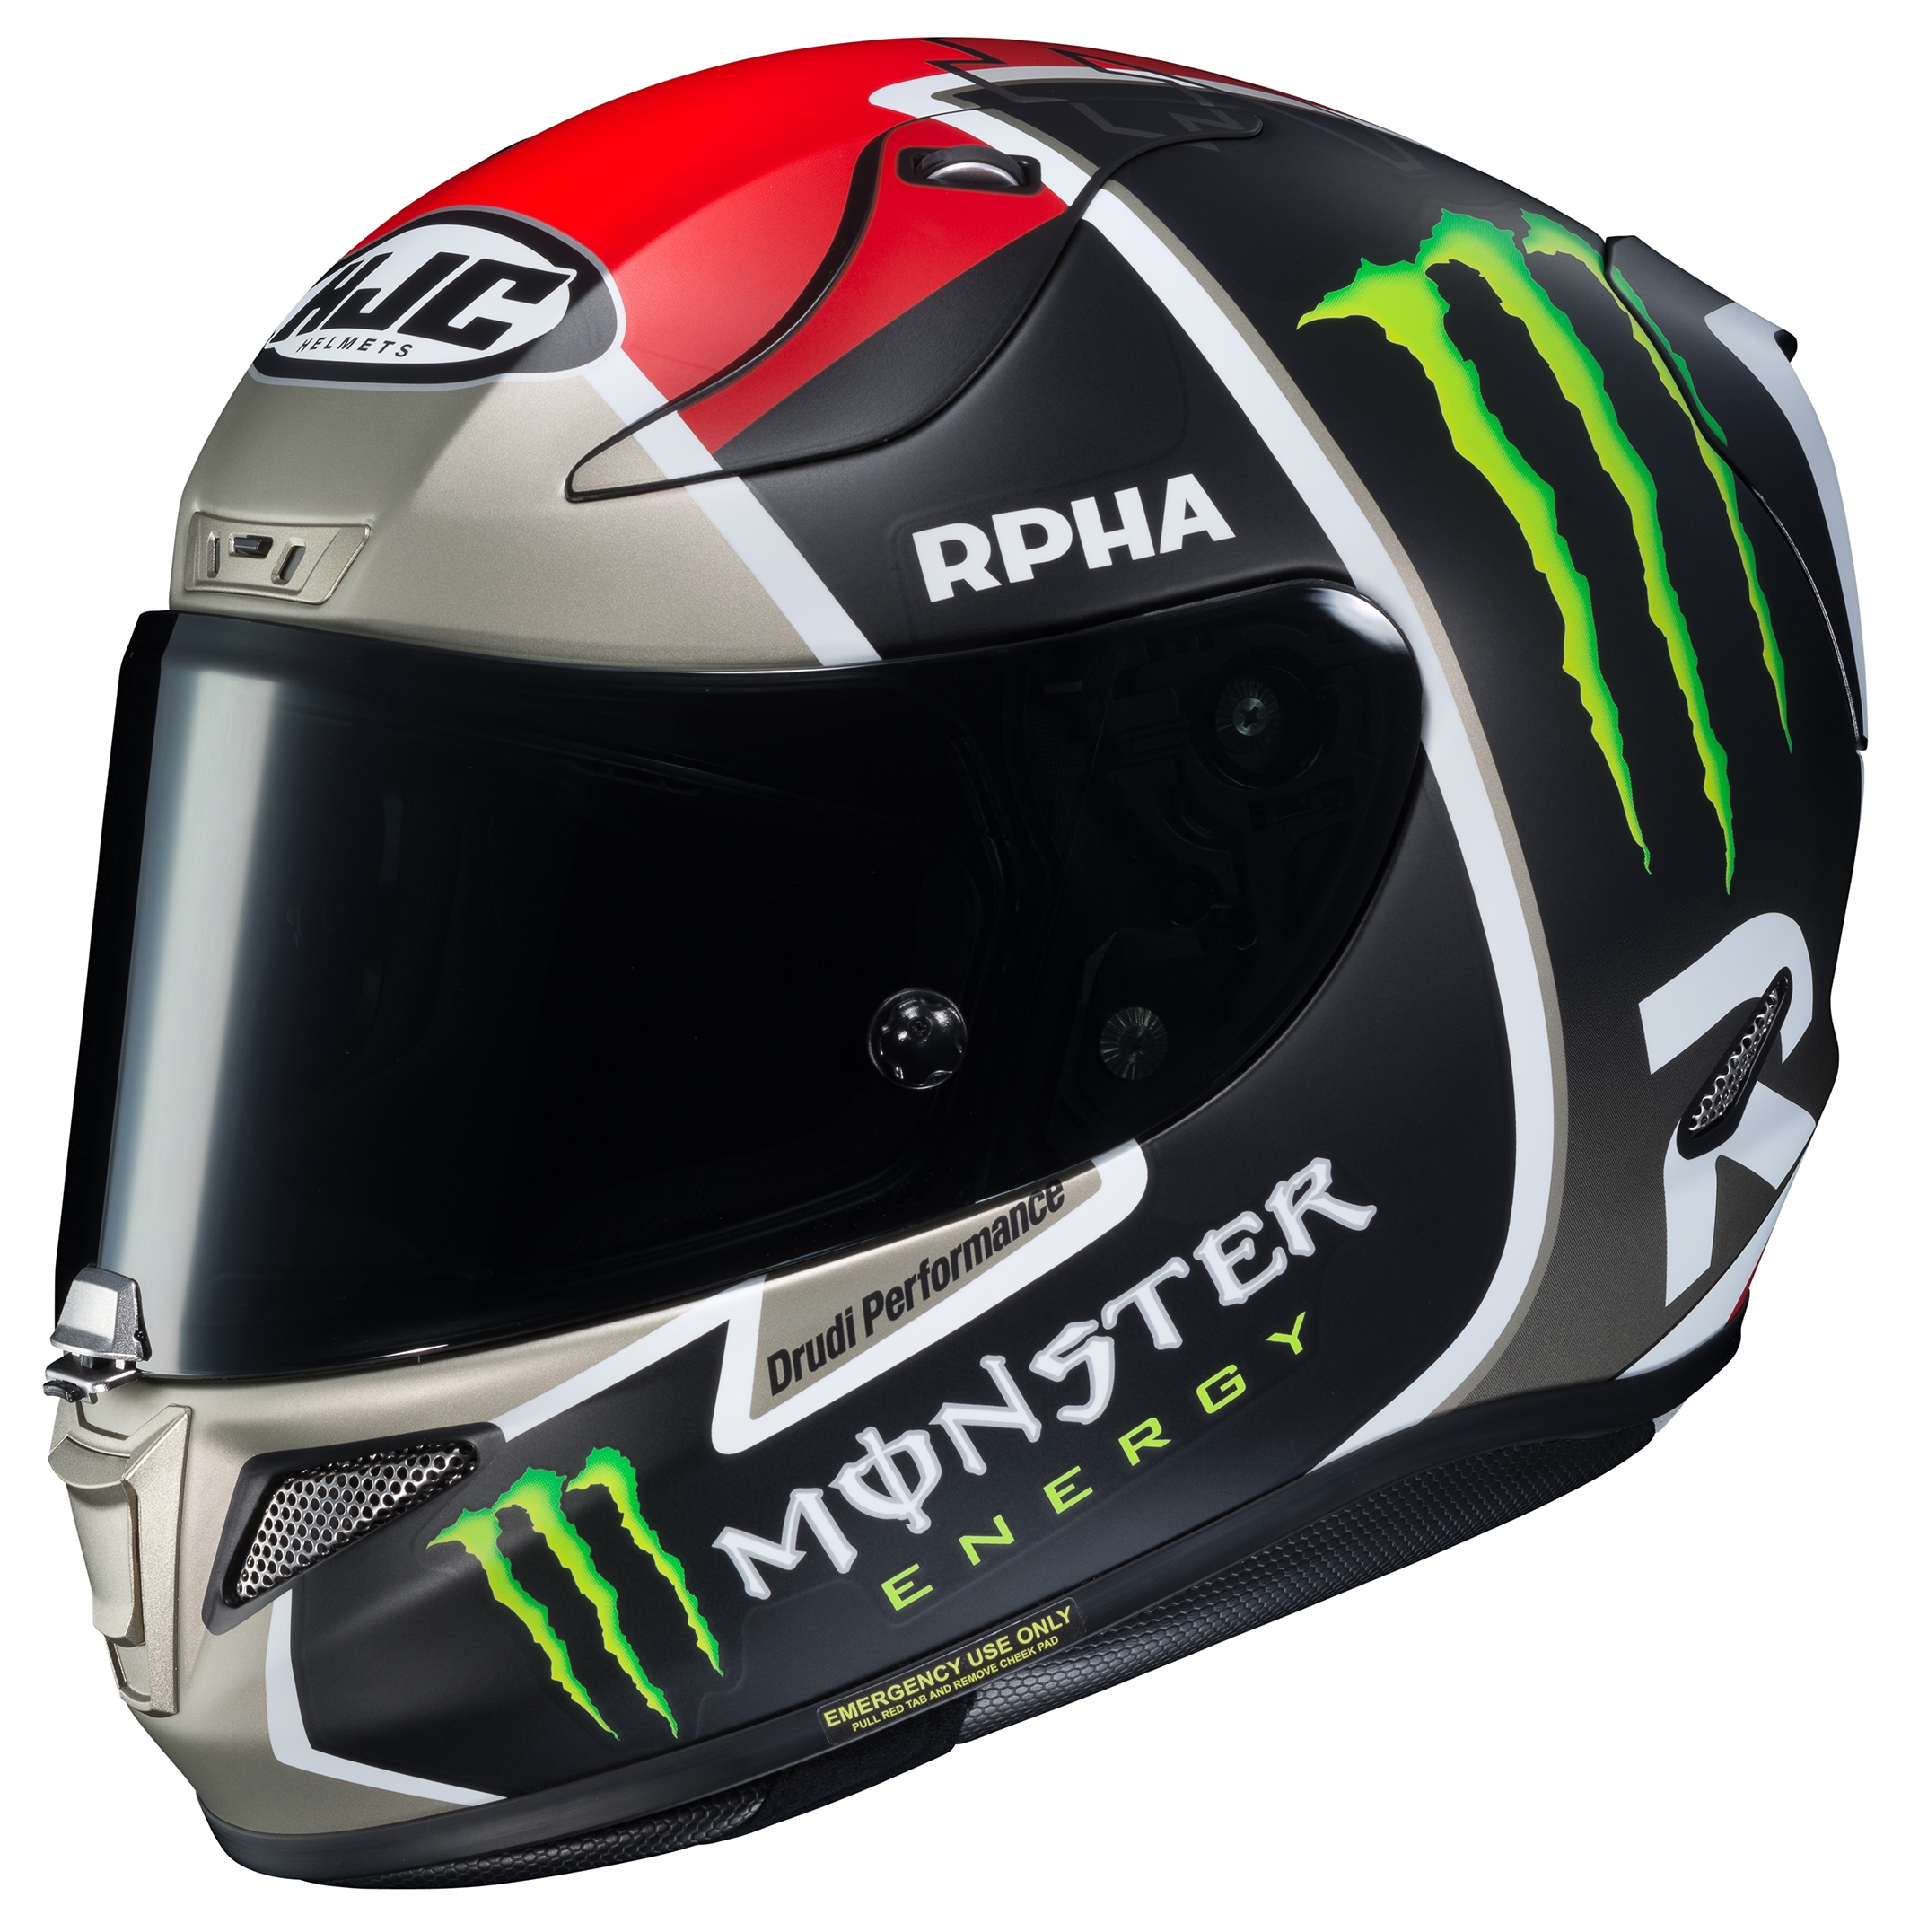 hjc rpha 11 pro folger helmet 20 off revzilla. Black Bedroom Furniture Sets. Home Design Ideas